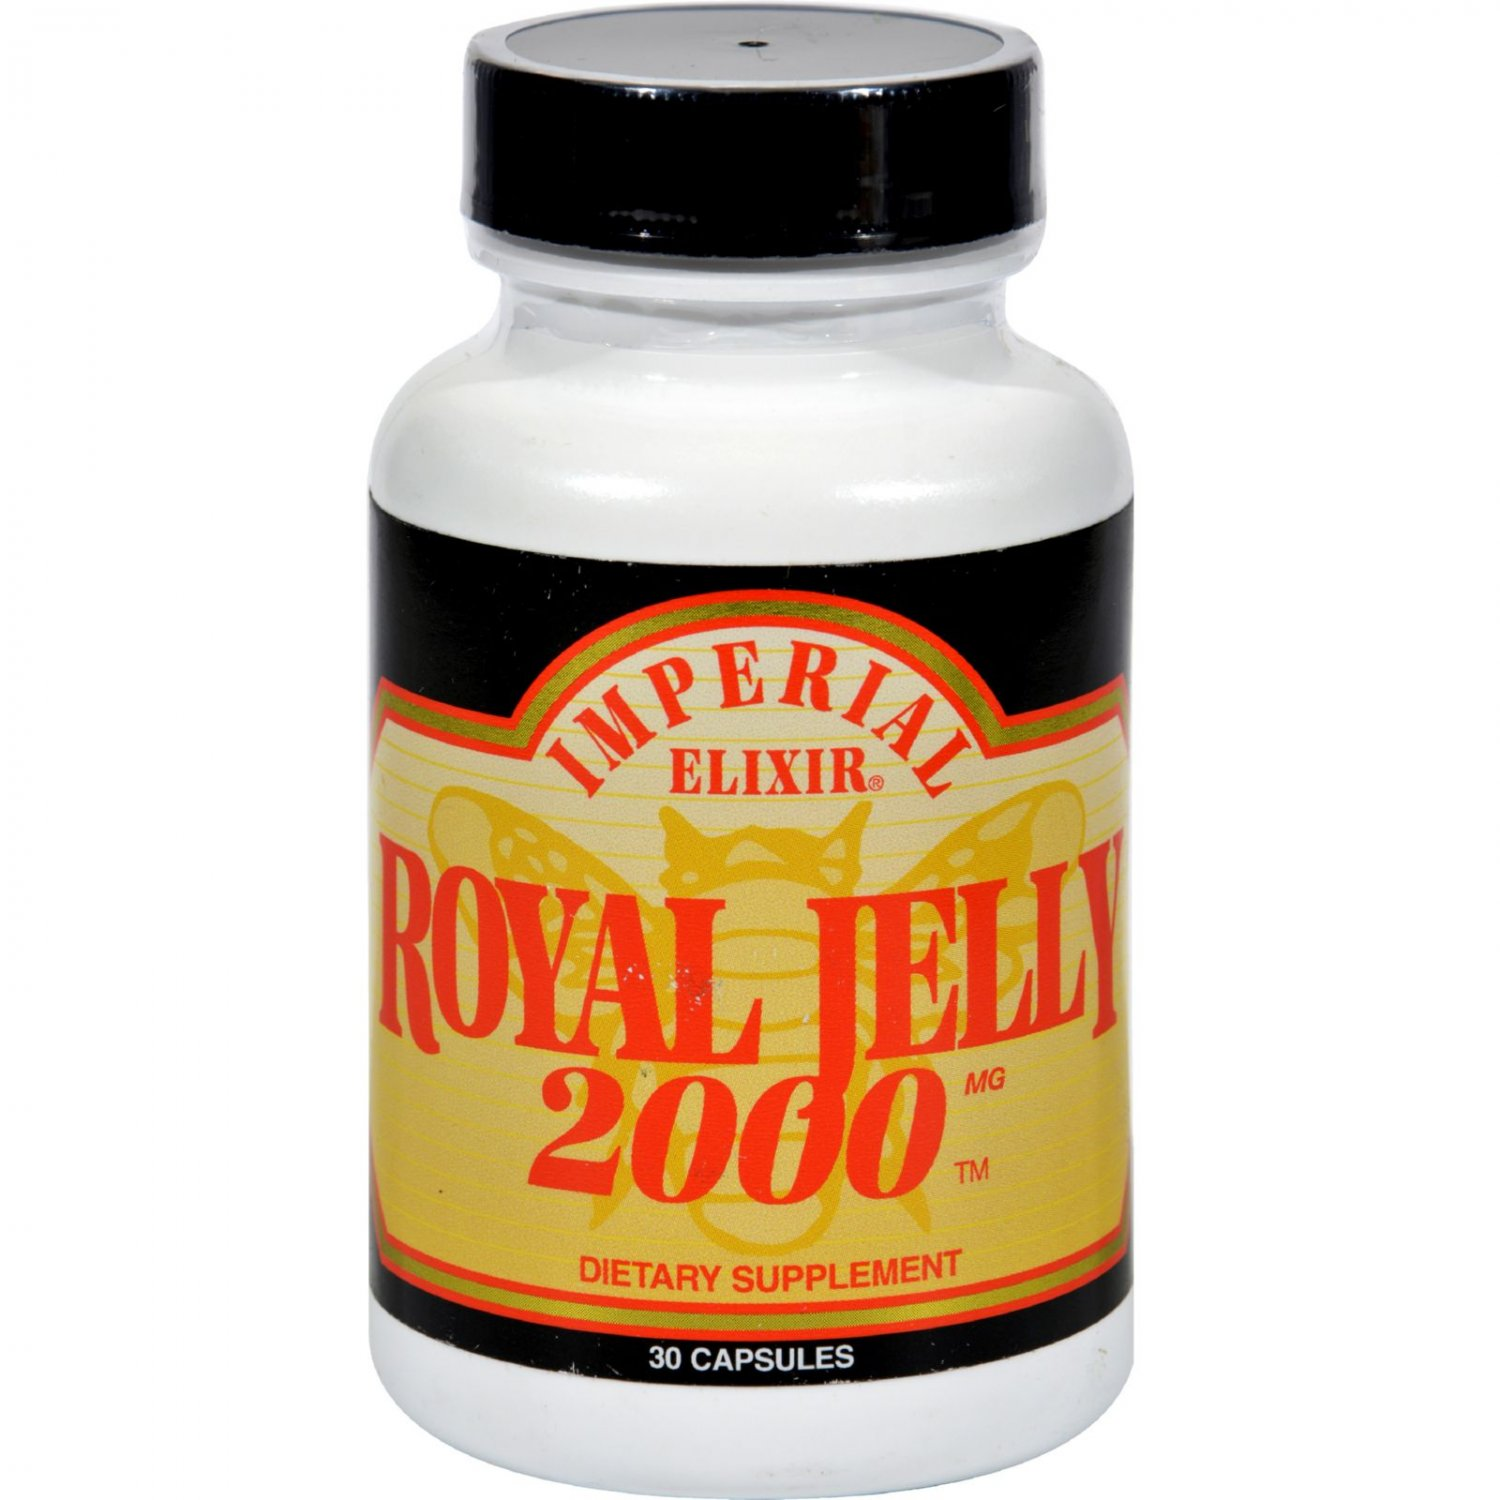 Imperial Elixir Royal Jelly 2000 - 2000 mg - 30 Capsules